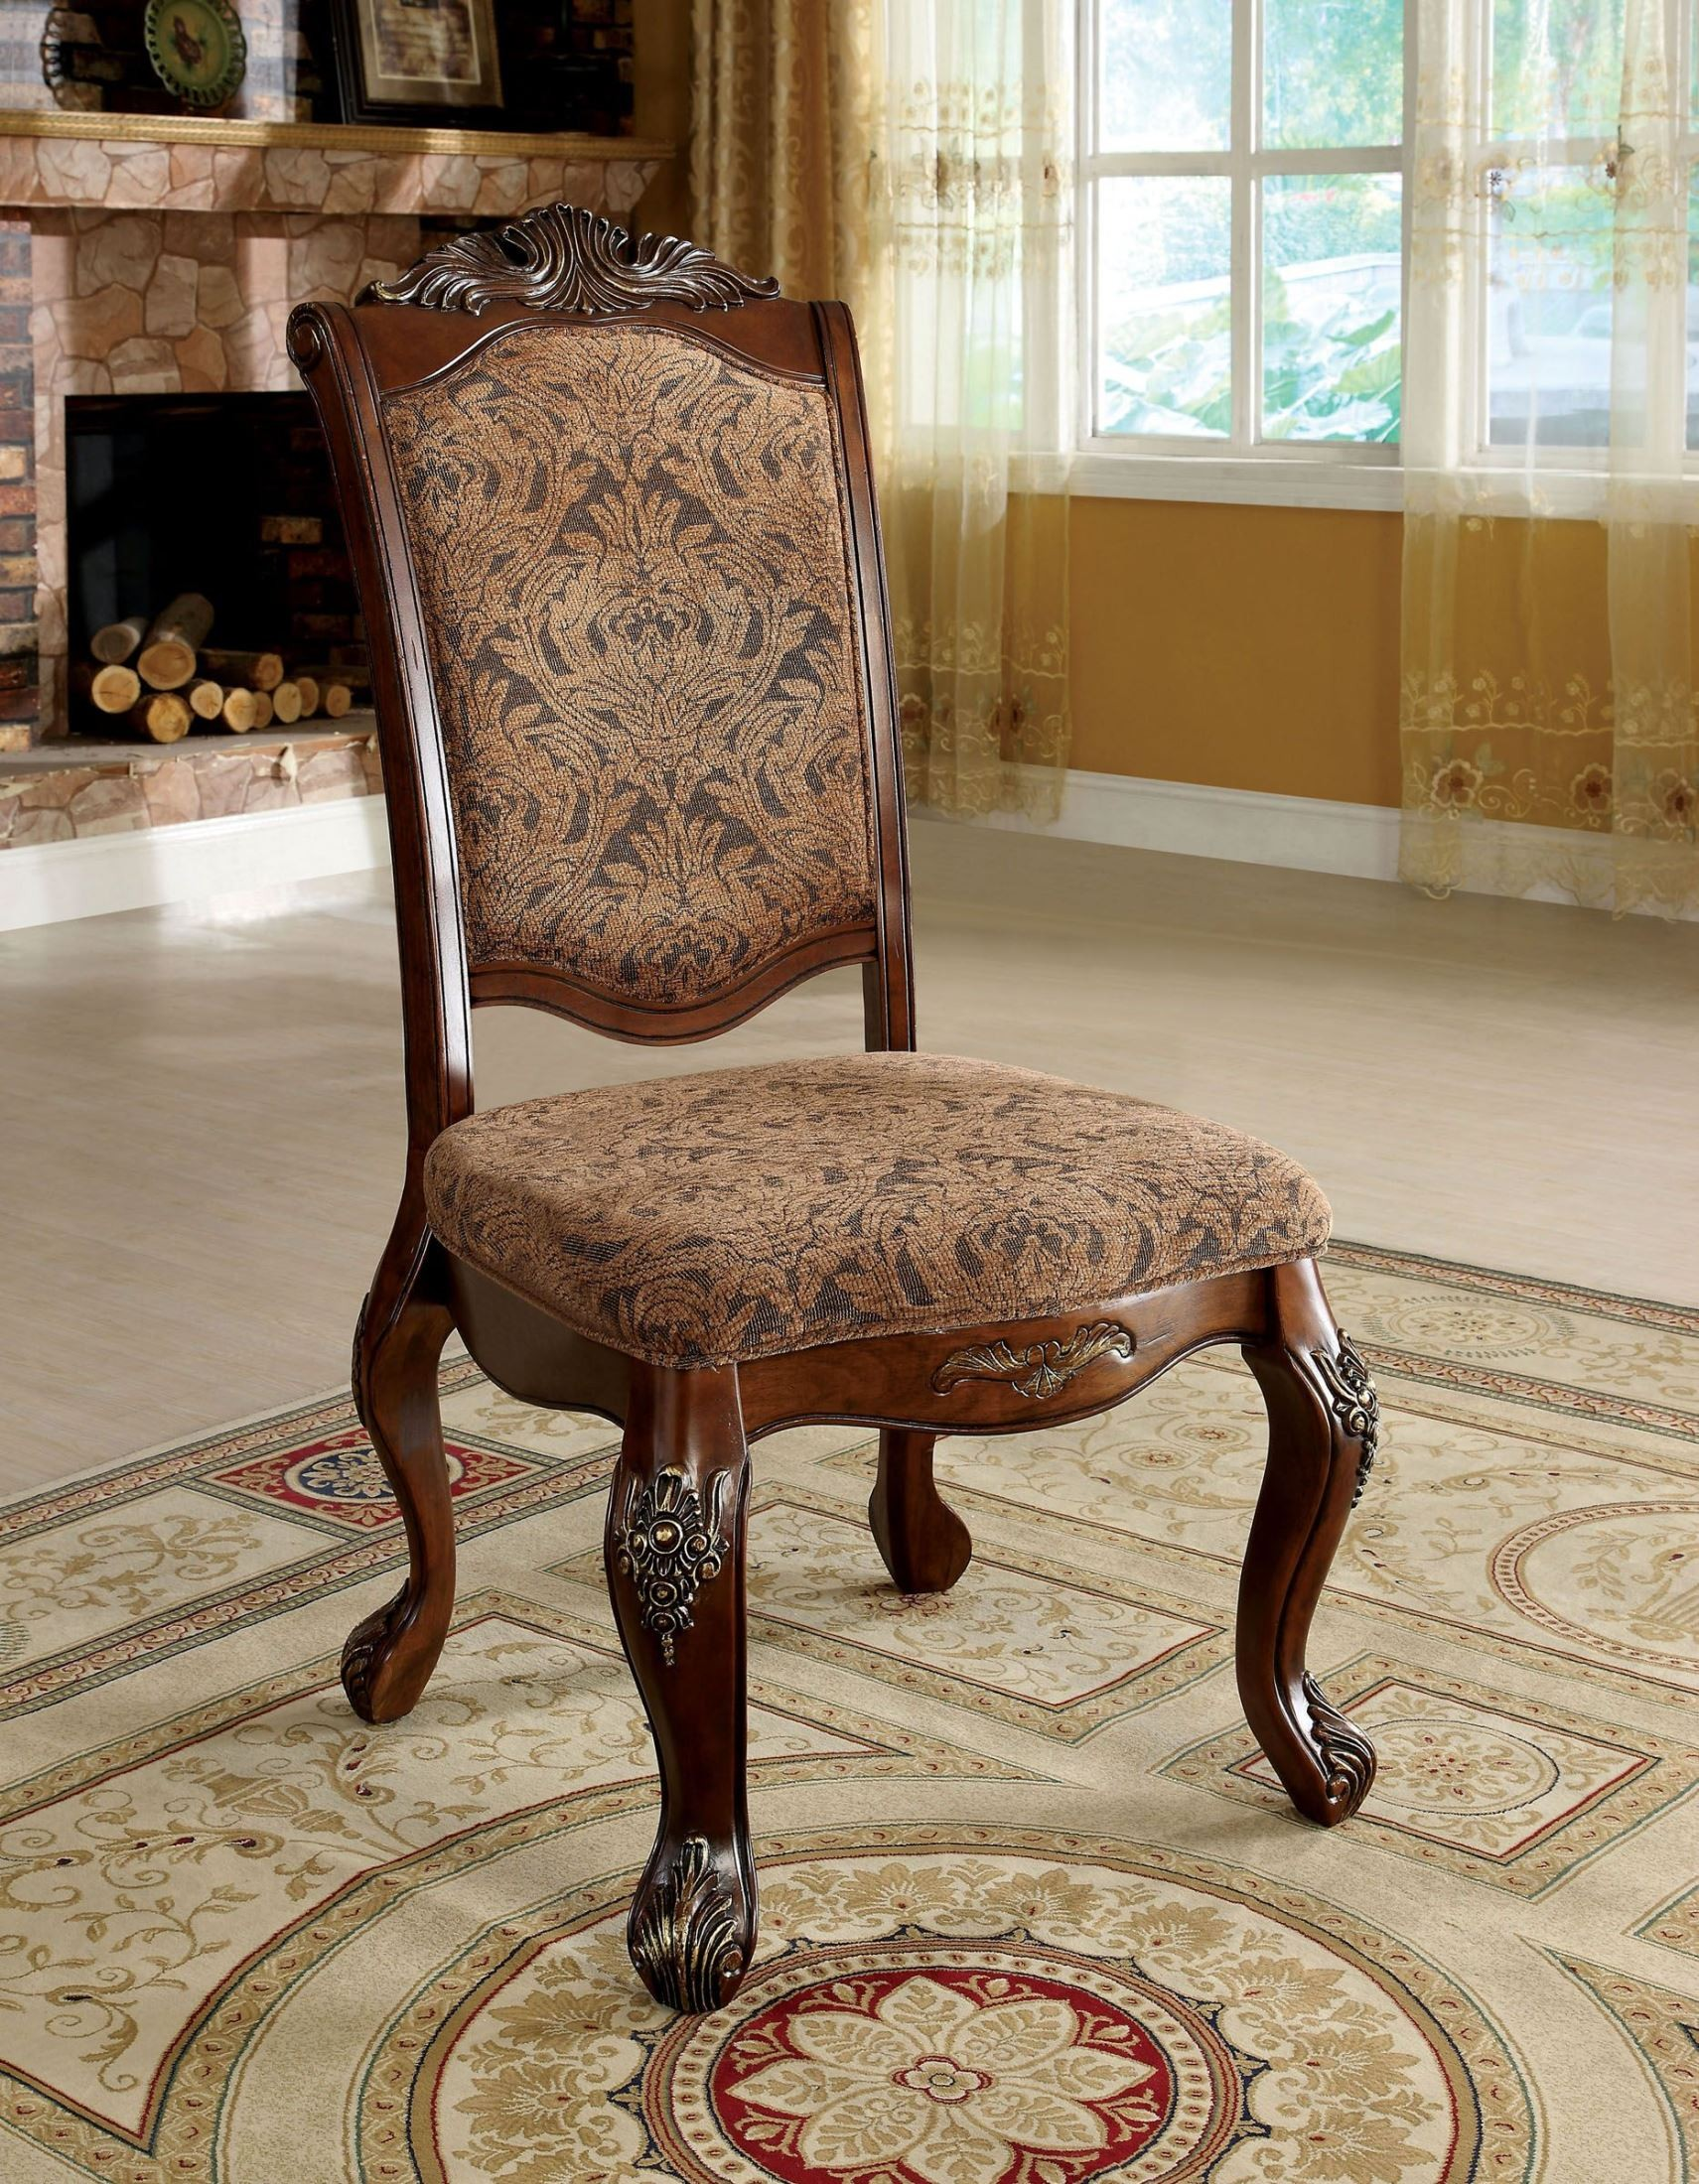 Cherry Chairs Cromwell Antique Cherry Side Chair Set Of 2 From Furniture